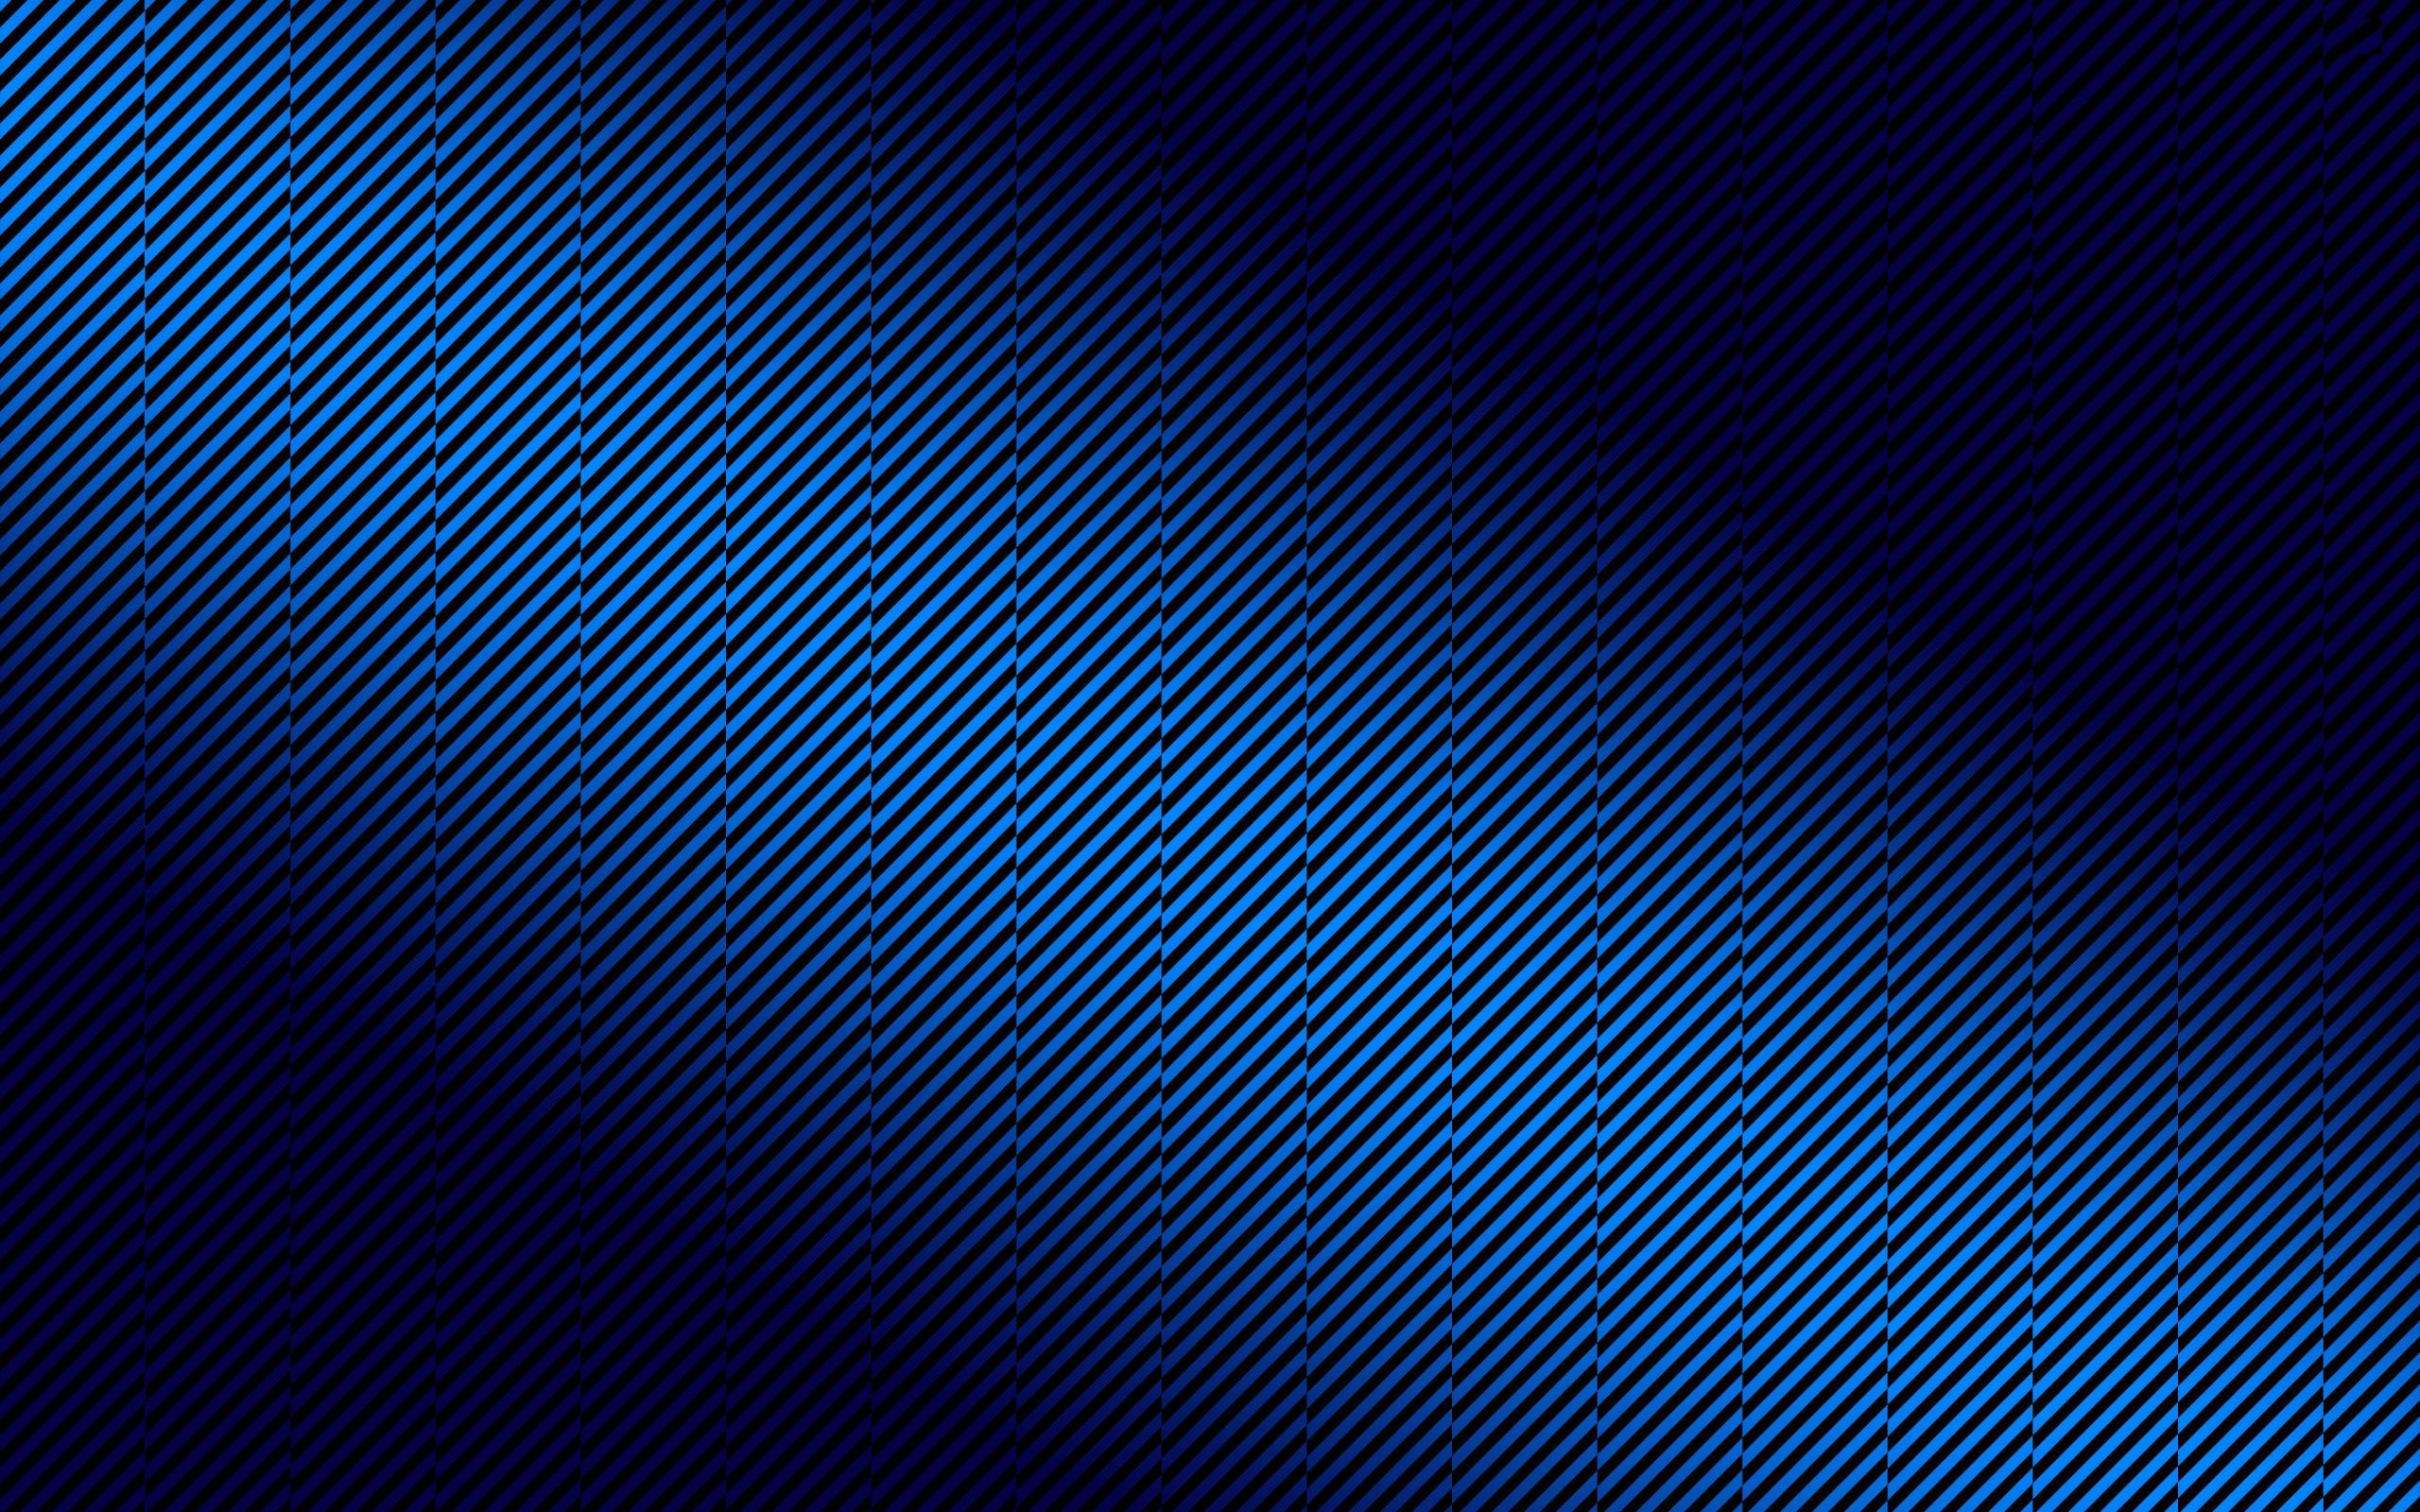 2560x1600 Blue Carbon Fiber Wallpaper HD | wallpaper.wiki